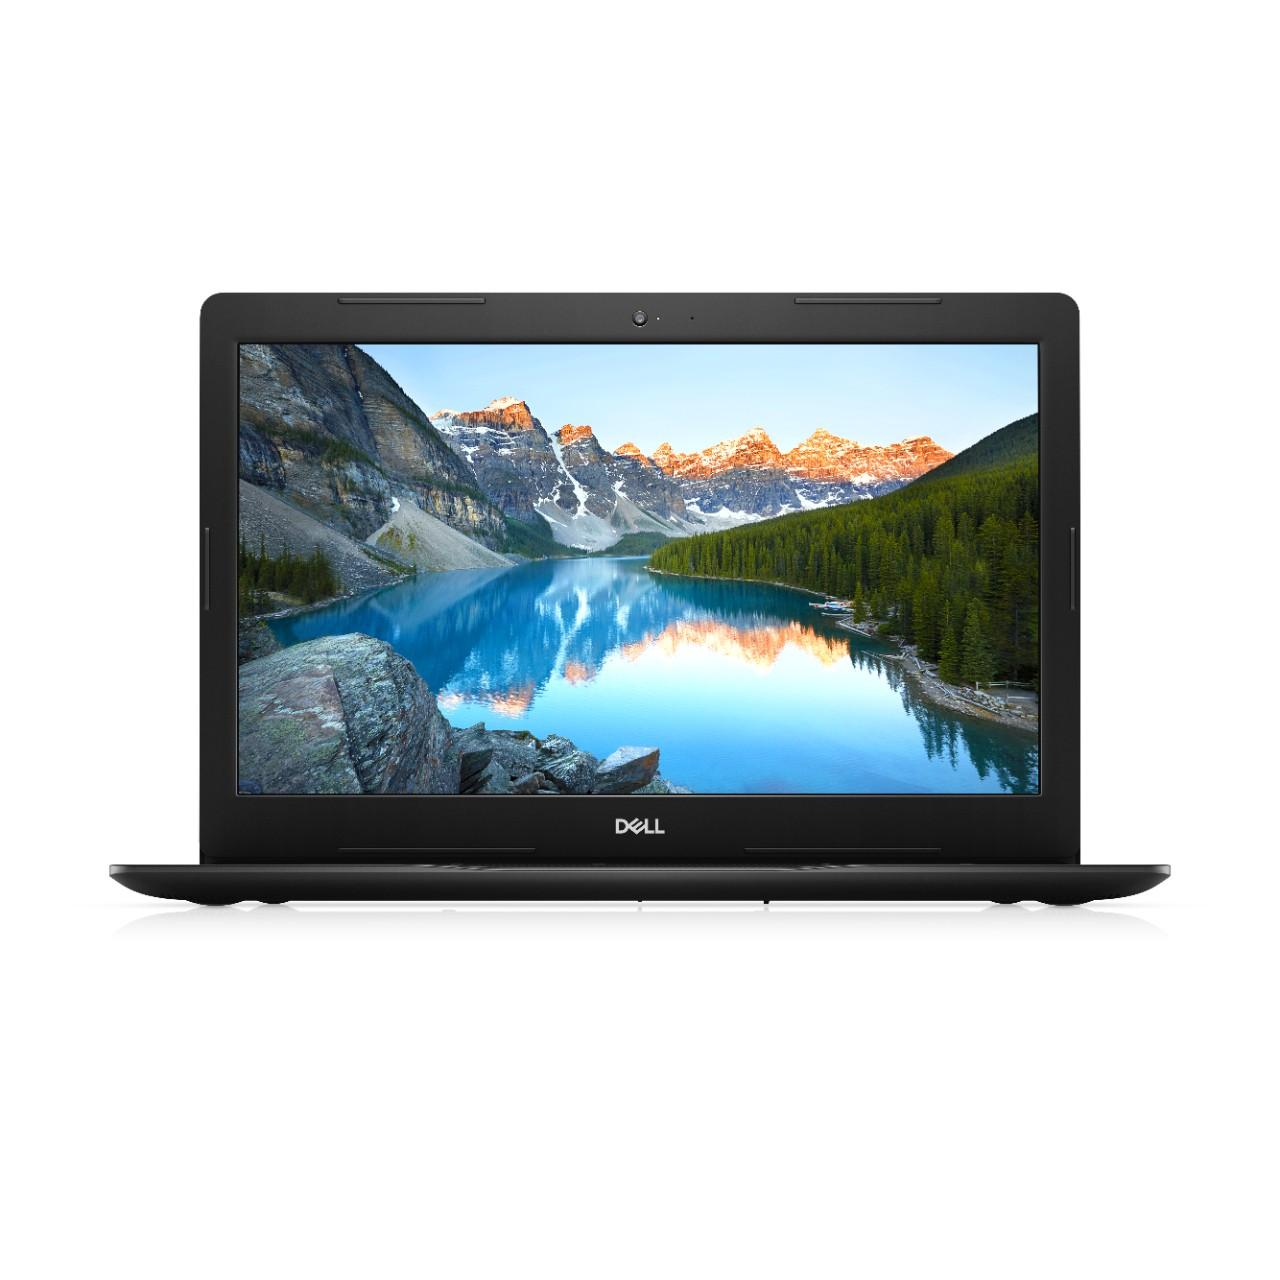 "Laptop Dell Inspiron 3580 (Intel Core i5-8265U (1.60 GHz/6 MB)/4GB RAM/1TB HDD/DVDRW/2GB AMD Radeon/15.6"" FHD/WL+BT/Win 10 Home/Black/15M) - Hàng Chính Hãng"